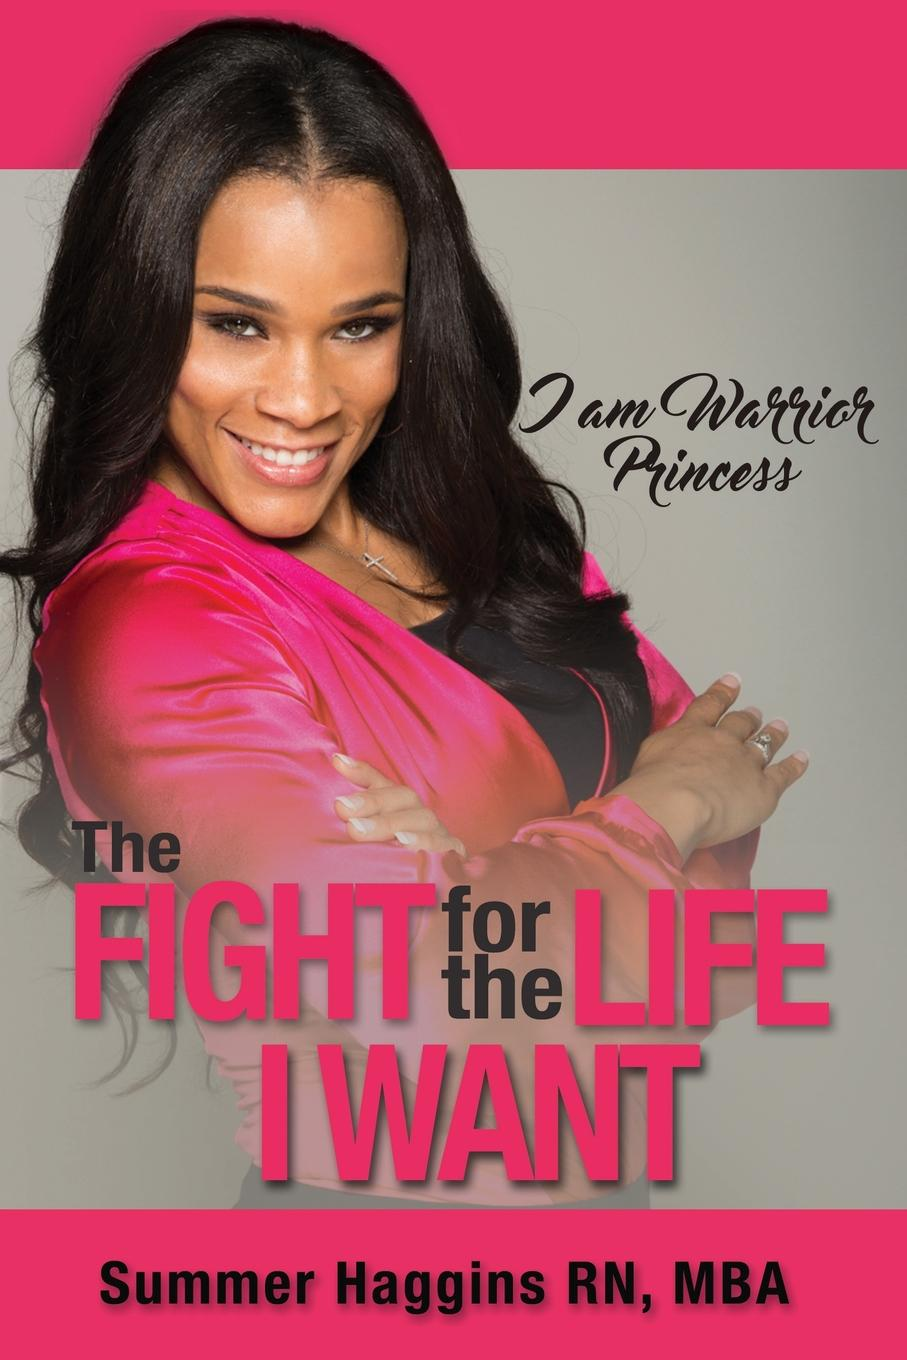 Summer Haggins I am Warrior Princess. The Fight for the Life I Want change your mind change your life